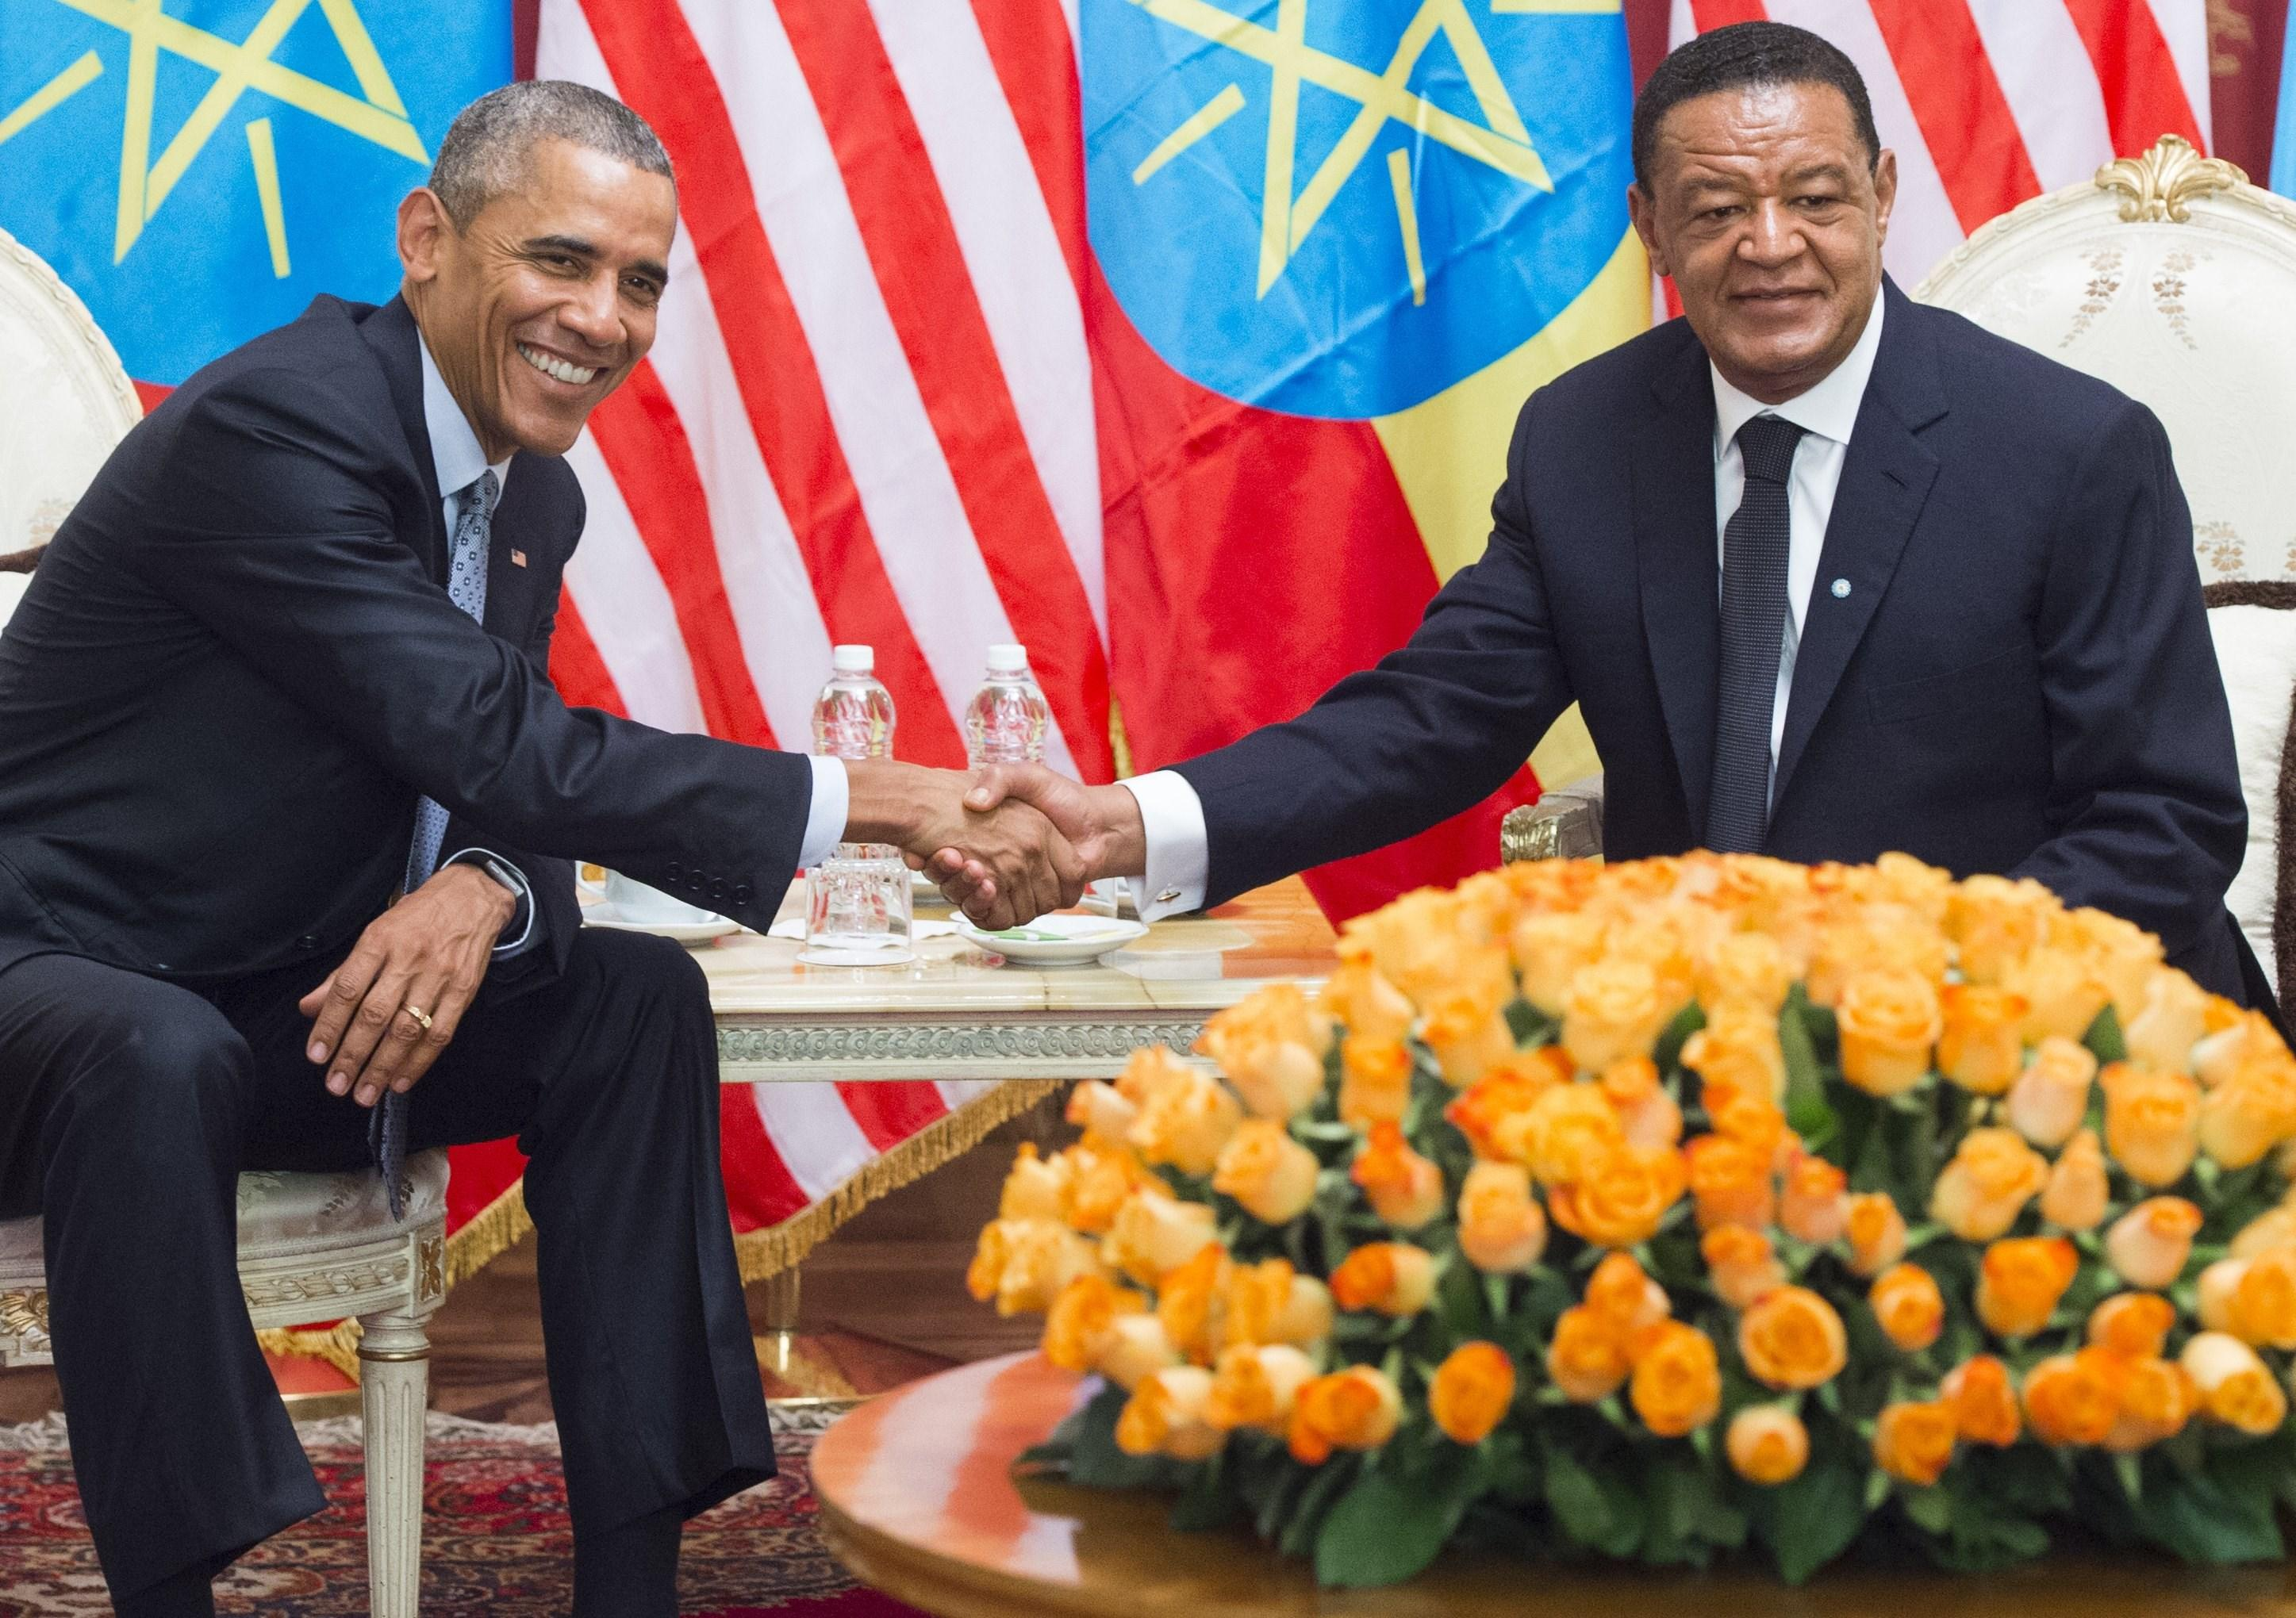 Mulatu Teshome and Barack Obama